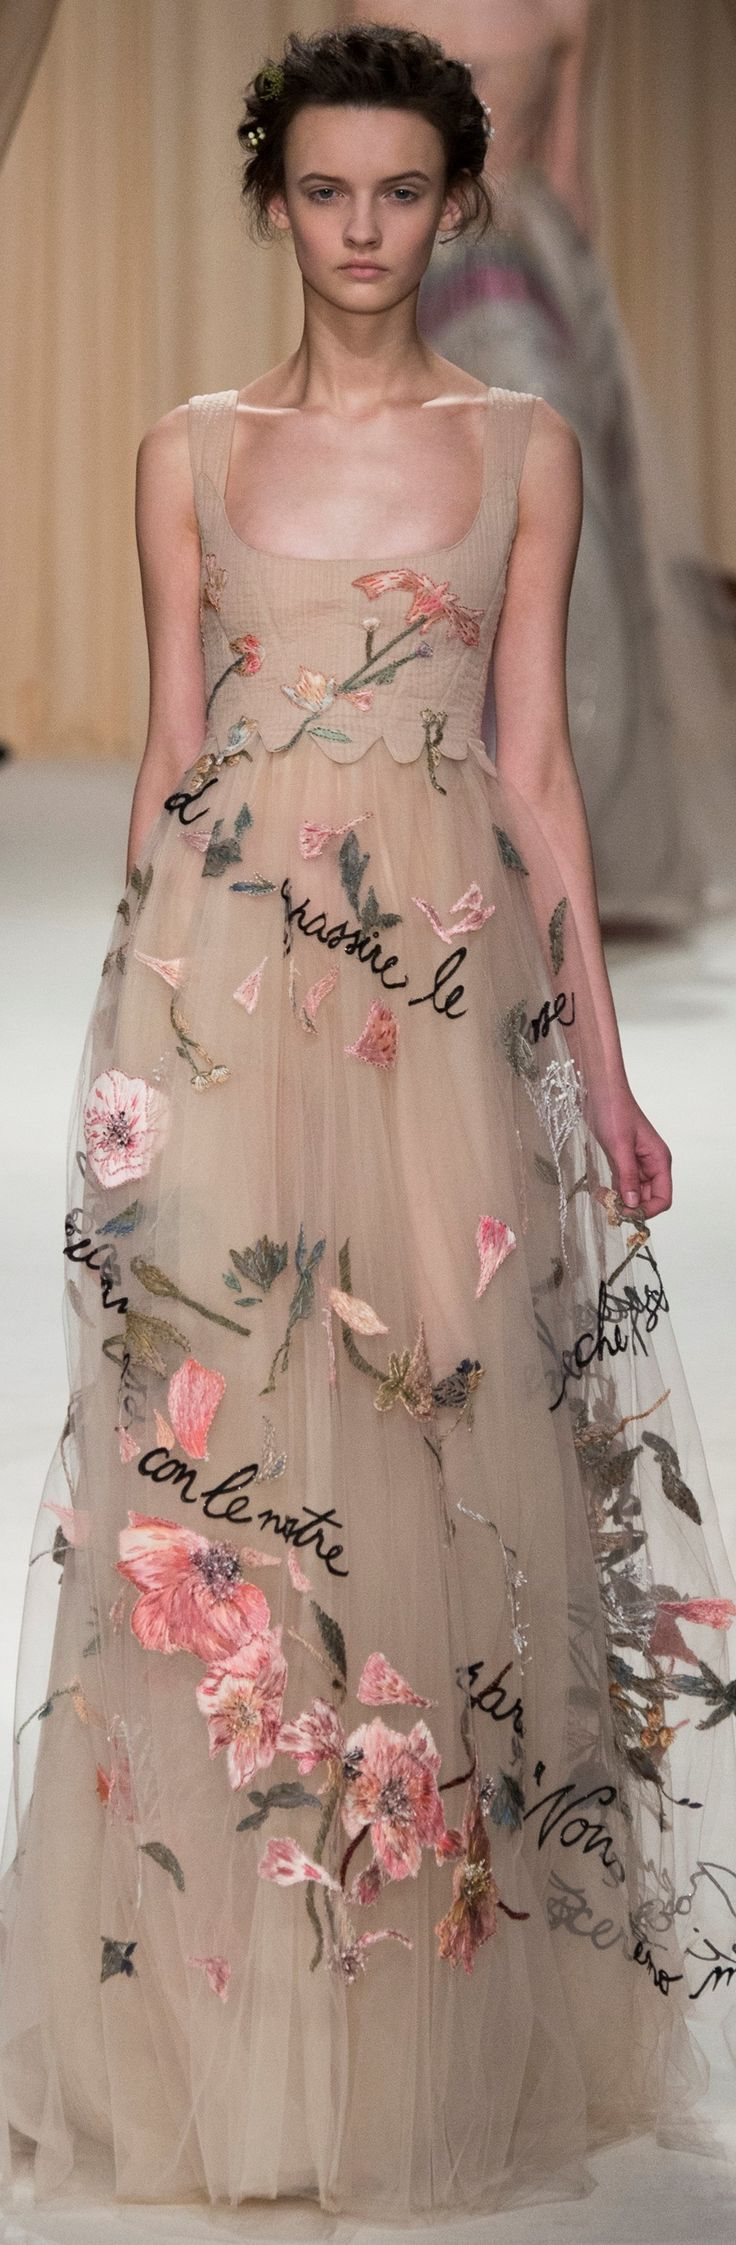 Valentino spring 2015 HC... BozBuys Budget Buyers Best Brands! ejewelry & accessories…online shopping http://www.bozbuys.com